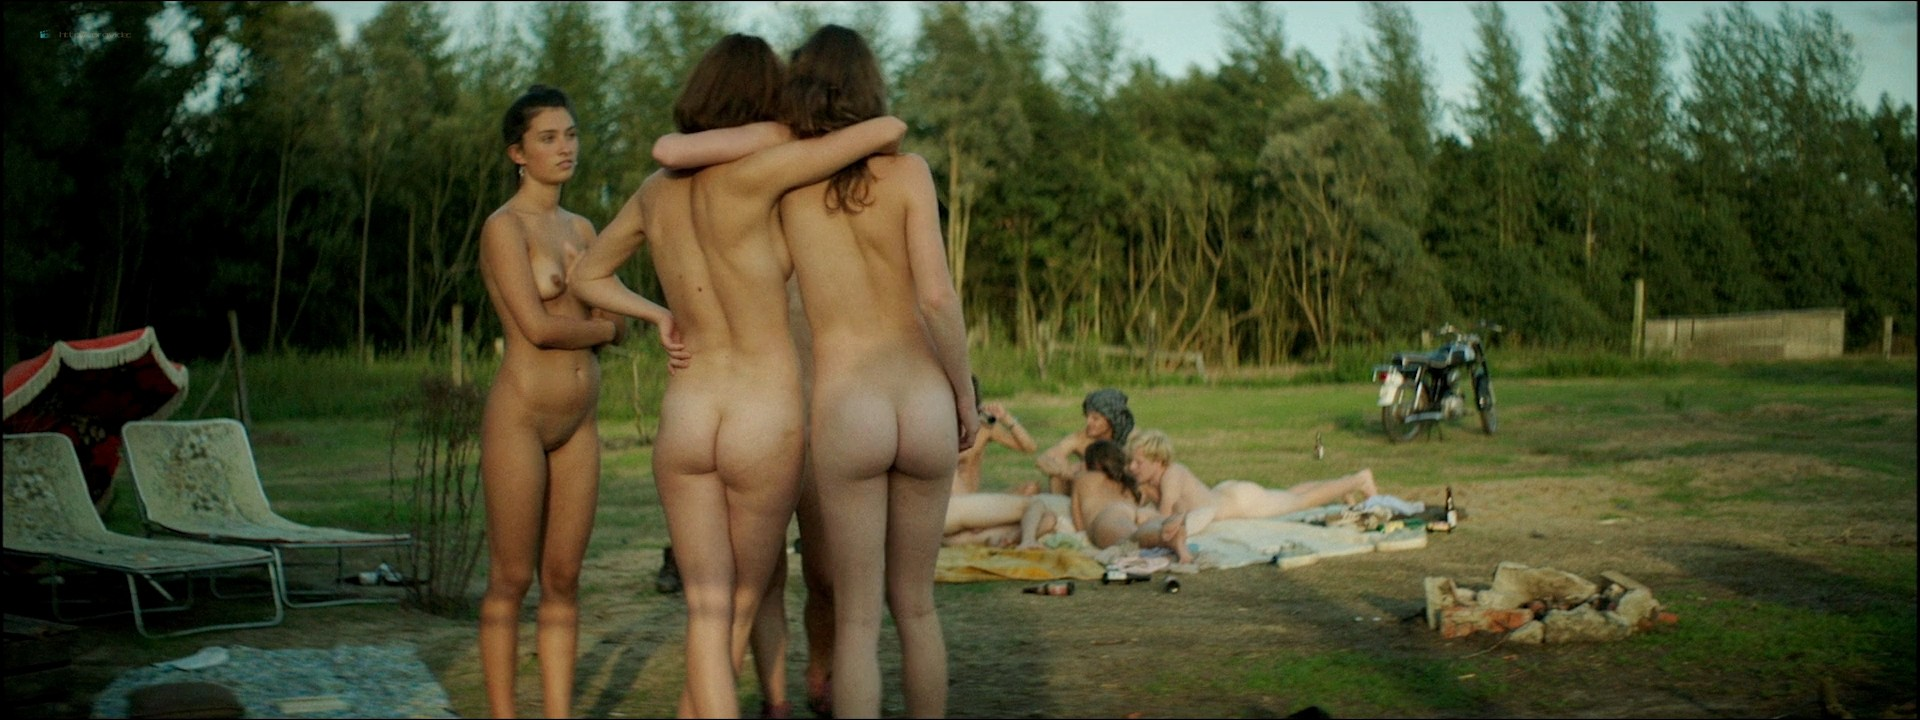 Pauline Casteleyn nude explicit with Gaia Sofia Cozijn and others - Wij (NL-2018) HD 1080p BluRay (6)